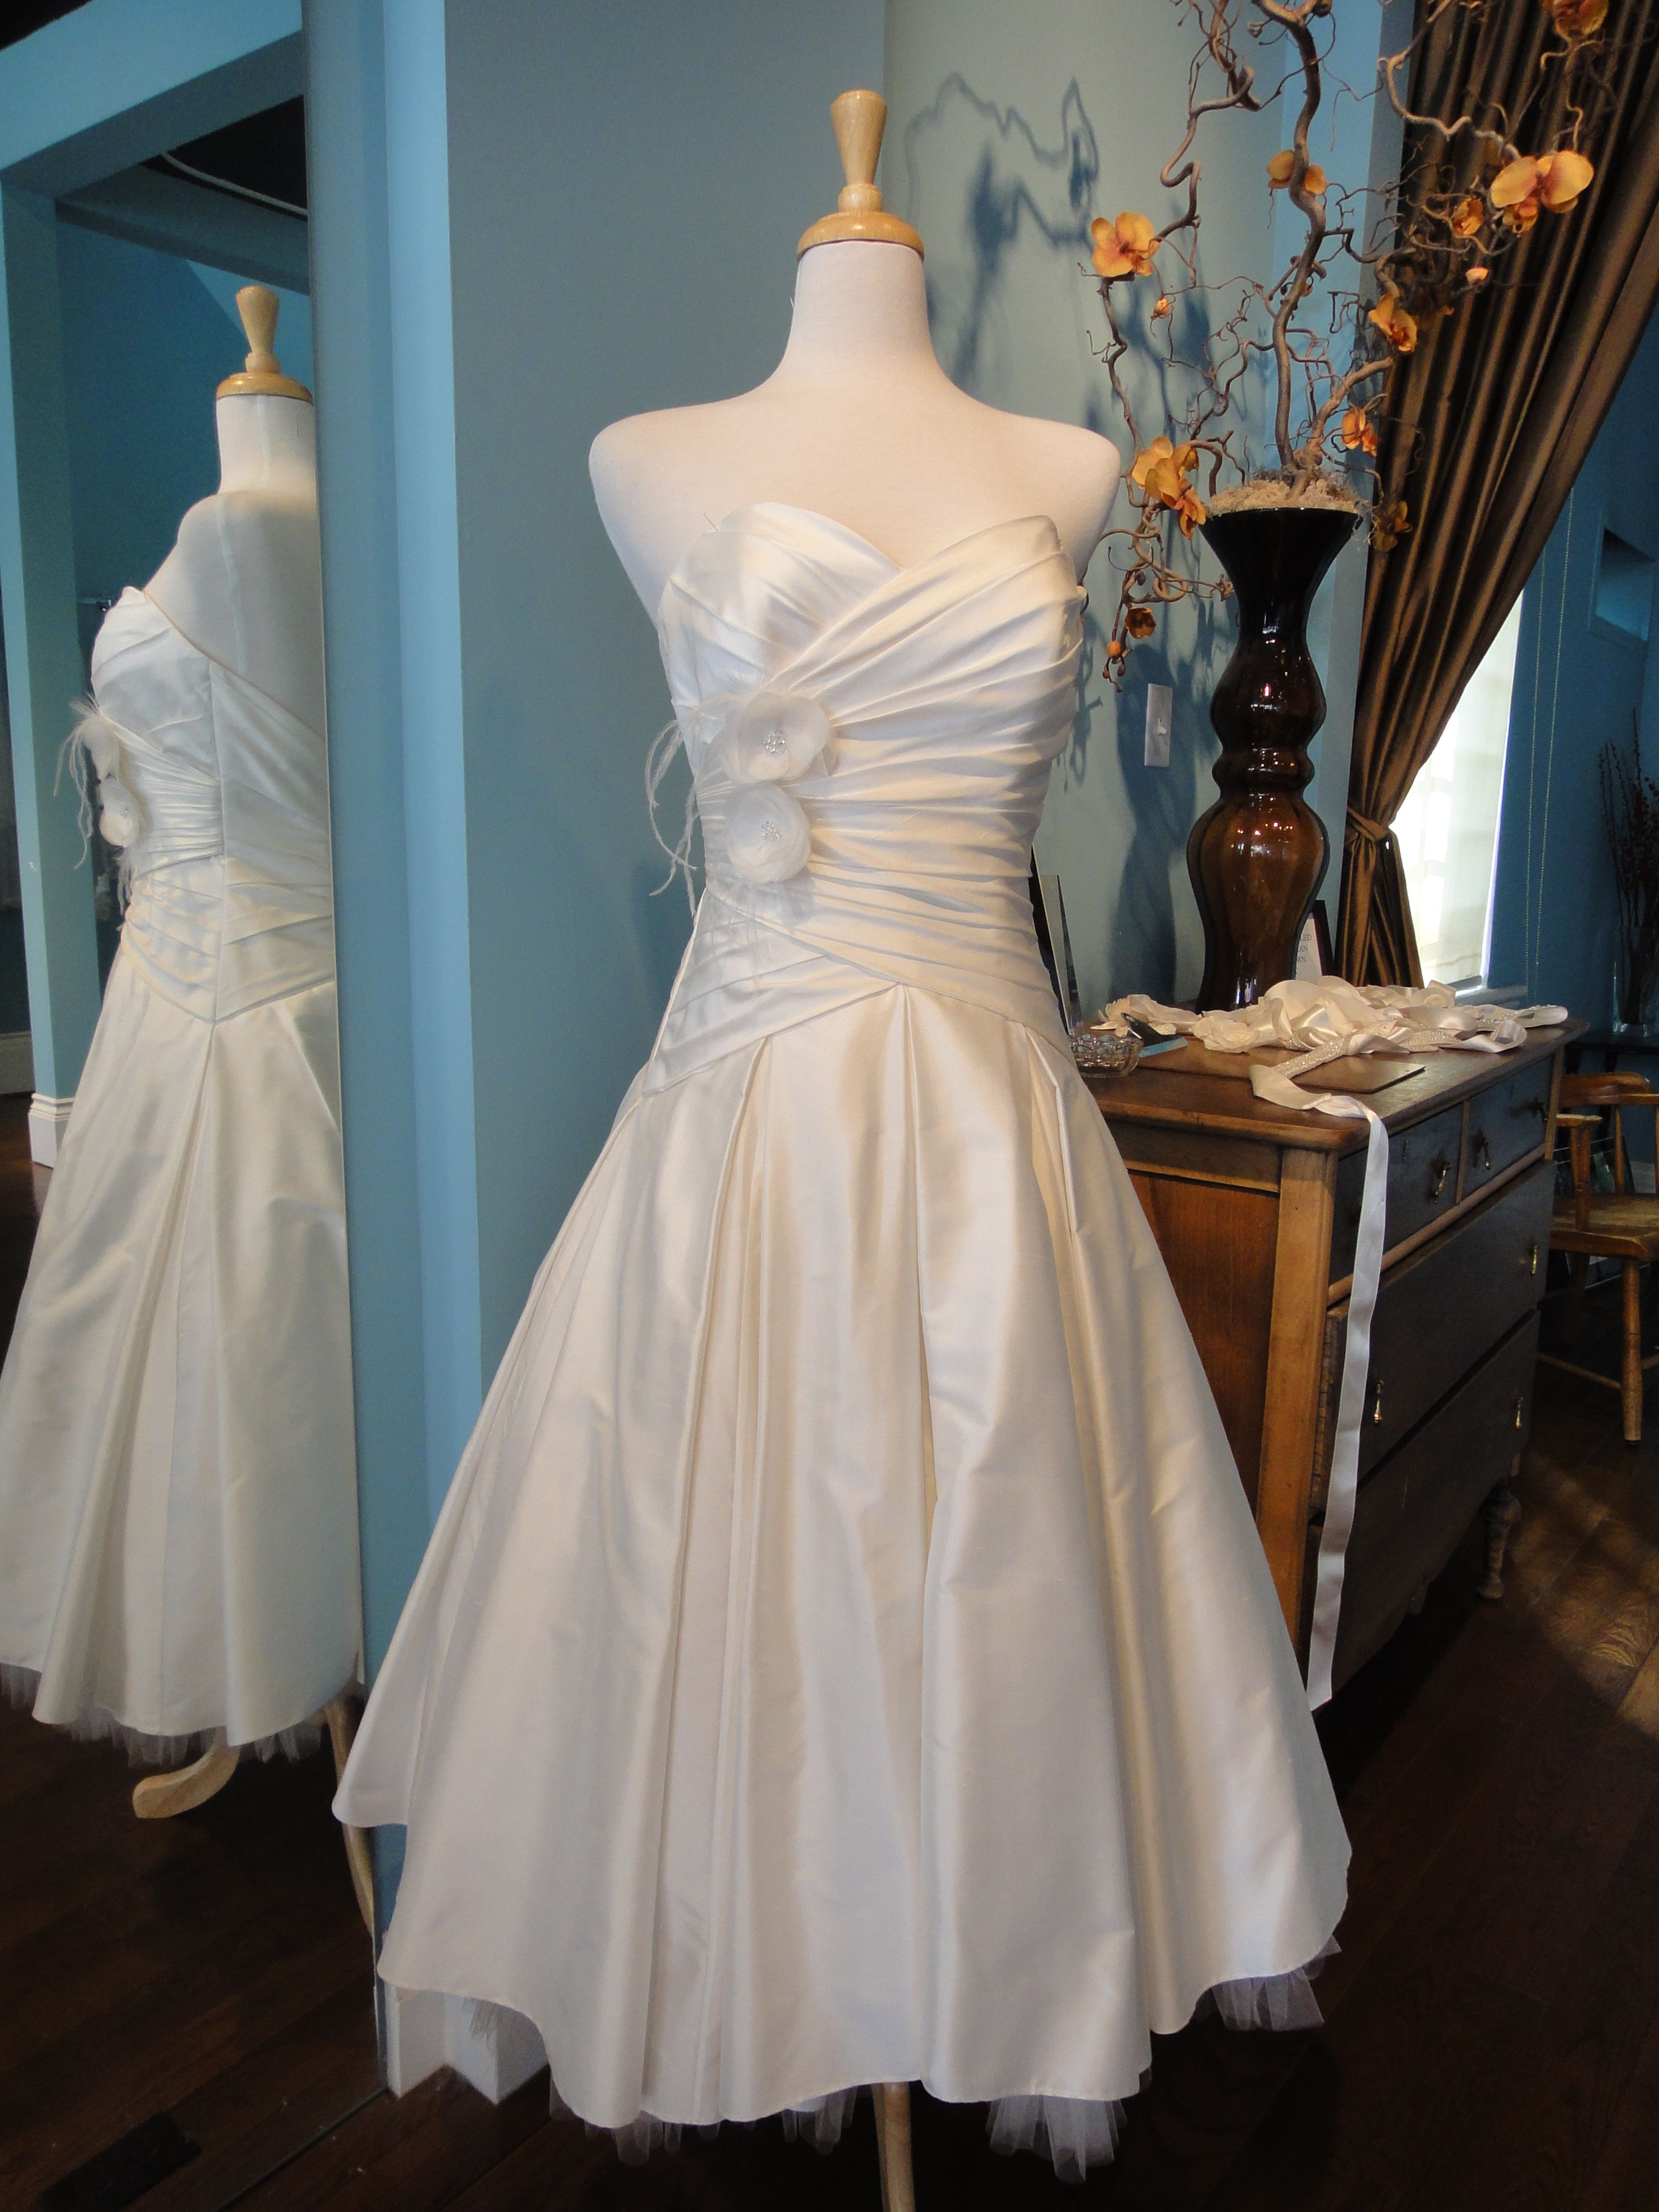 Fun Summer Wedding Dress...casual chic! (With images